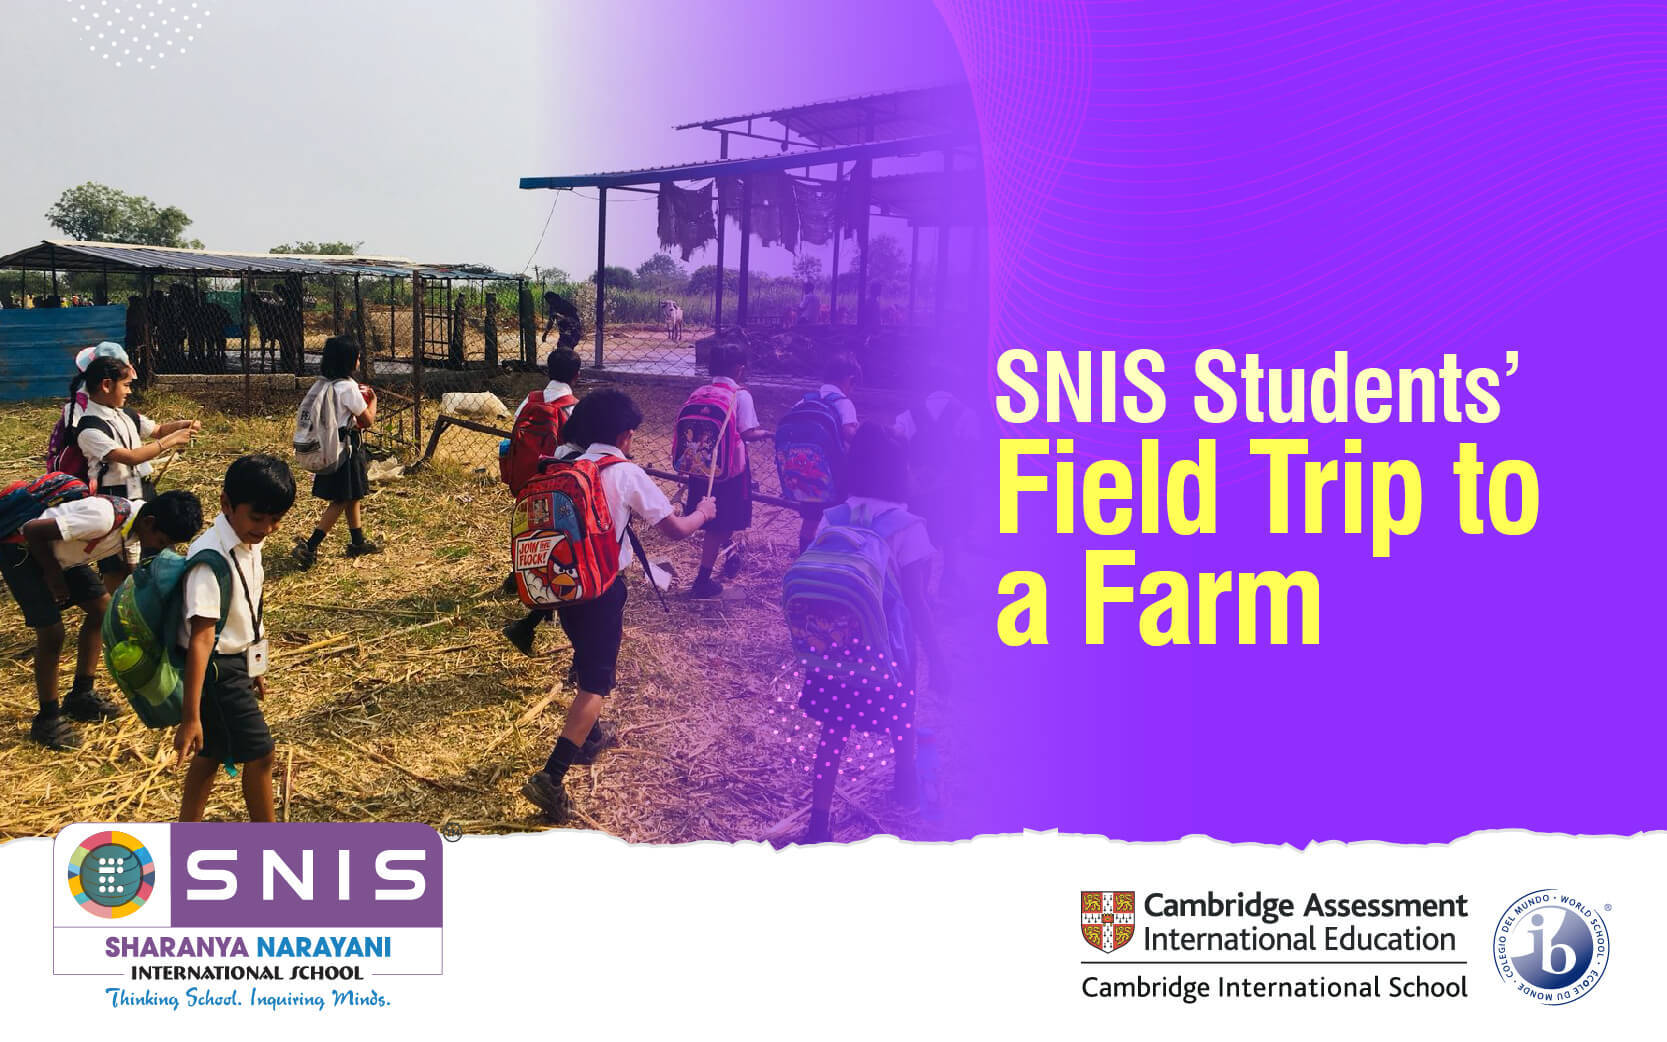 SNIS Students' Field Trip to a Farm by snis Top international schools in bangalore